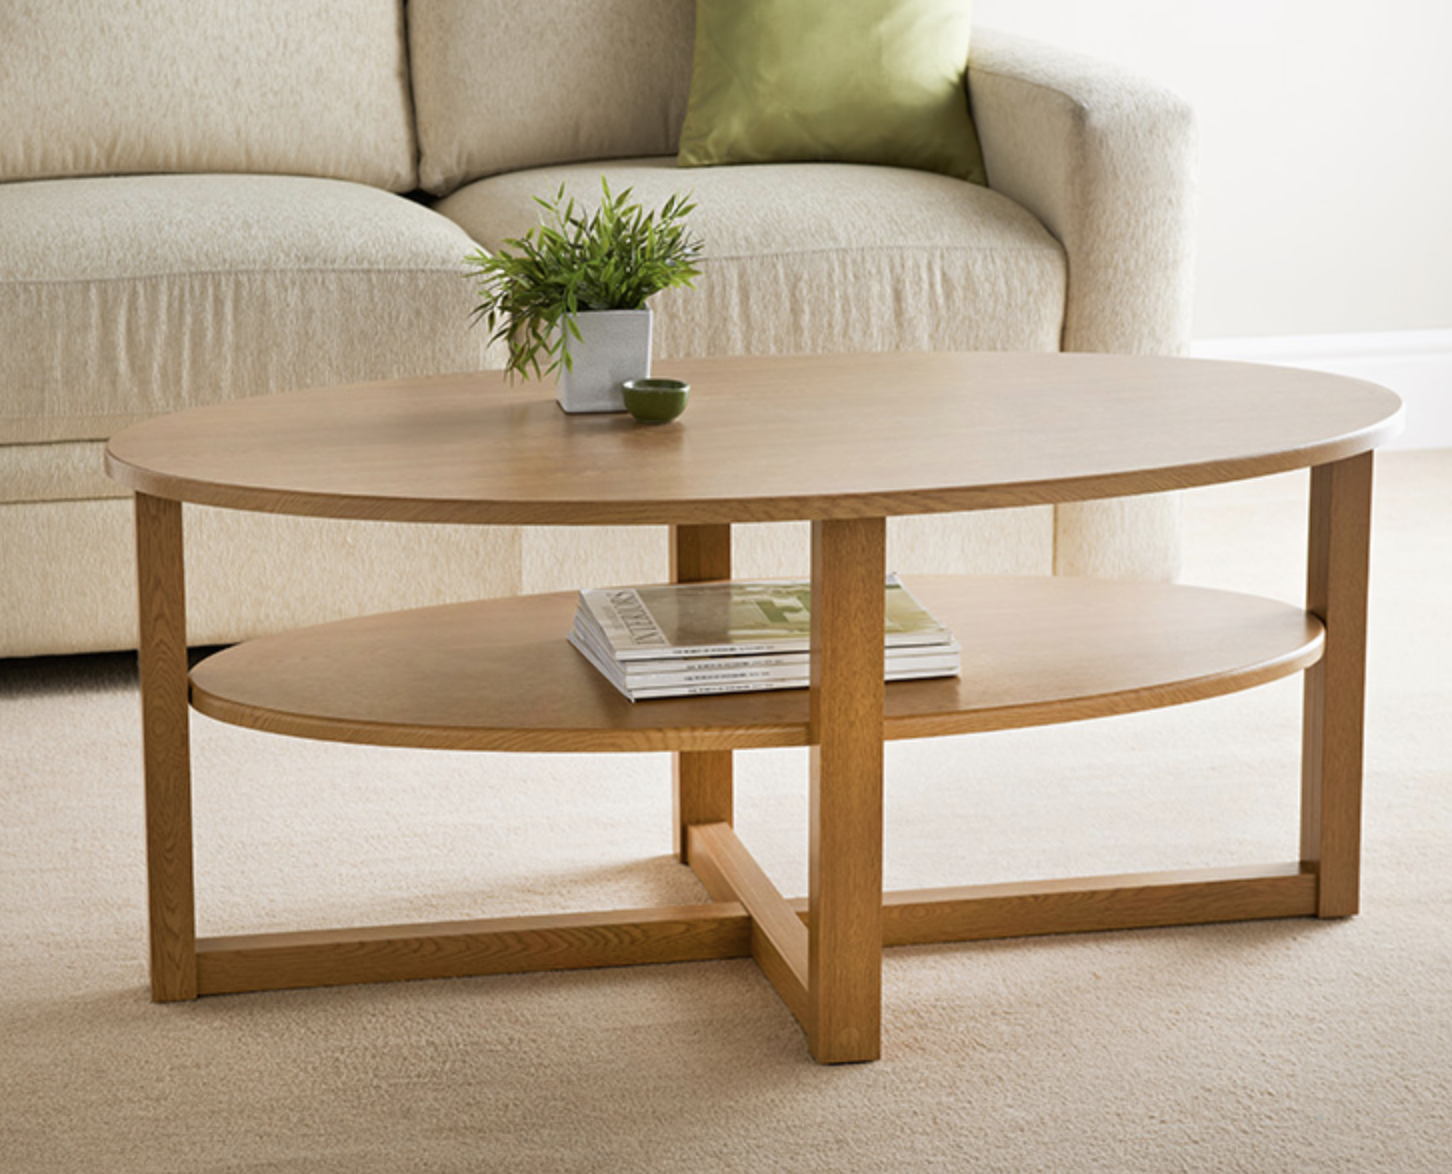 b&m stores furniture coffee table